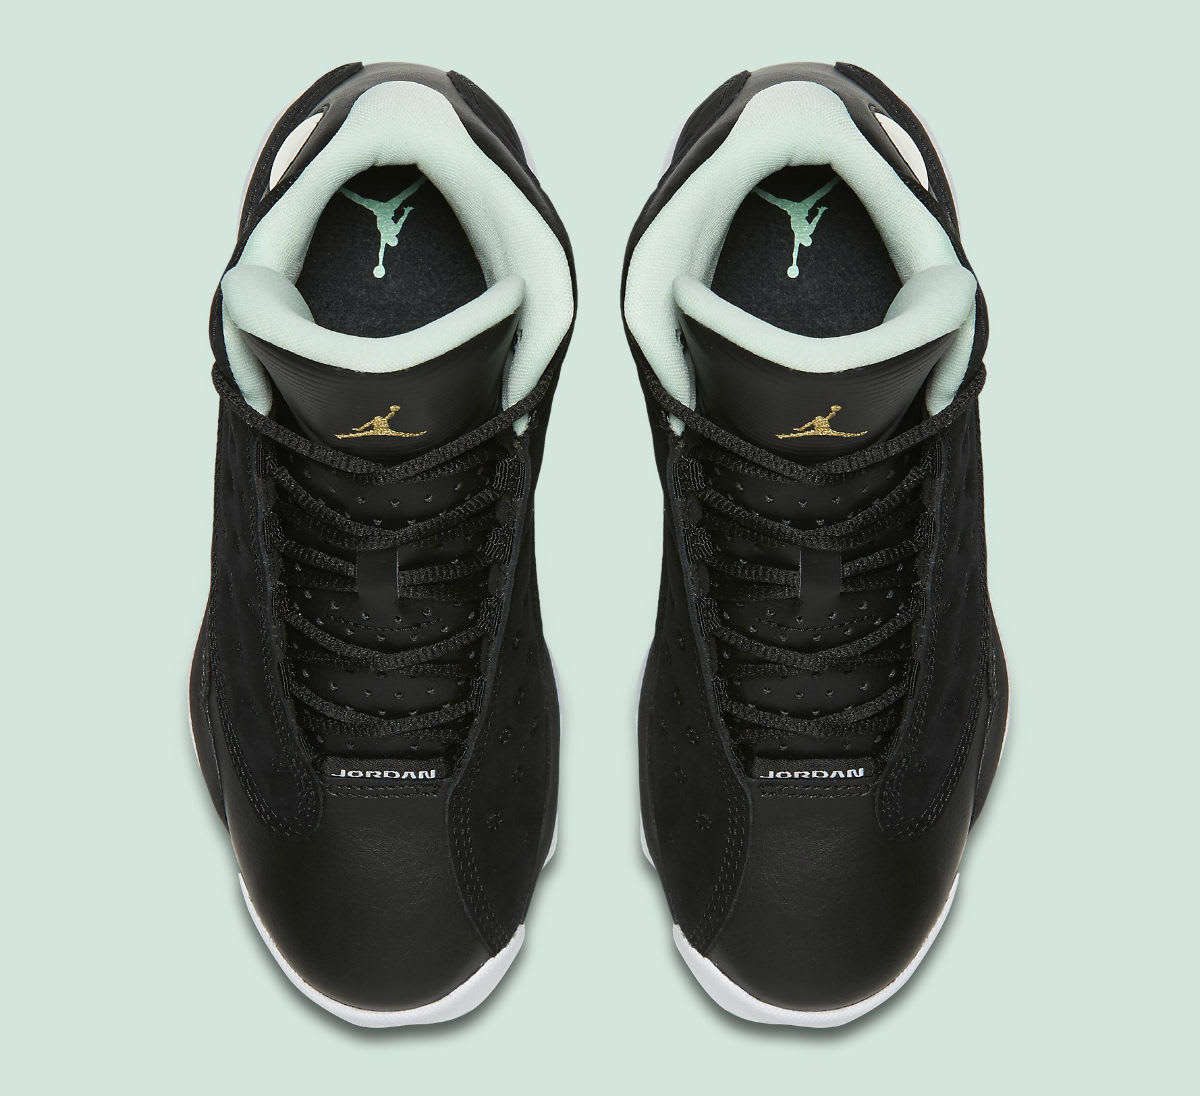 Air Jordan 13 Mint Foam Release Date Top 439358-015